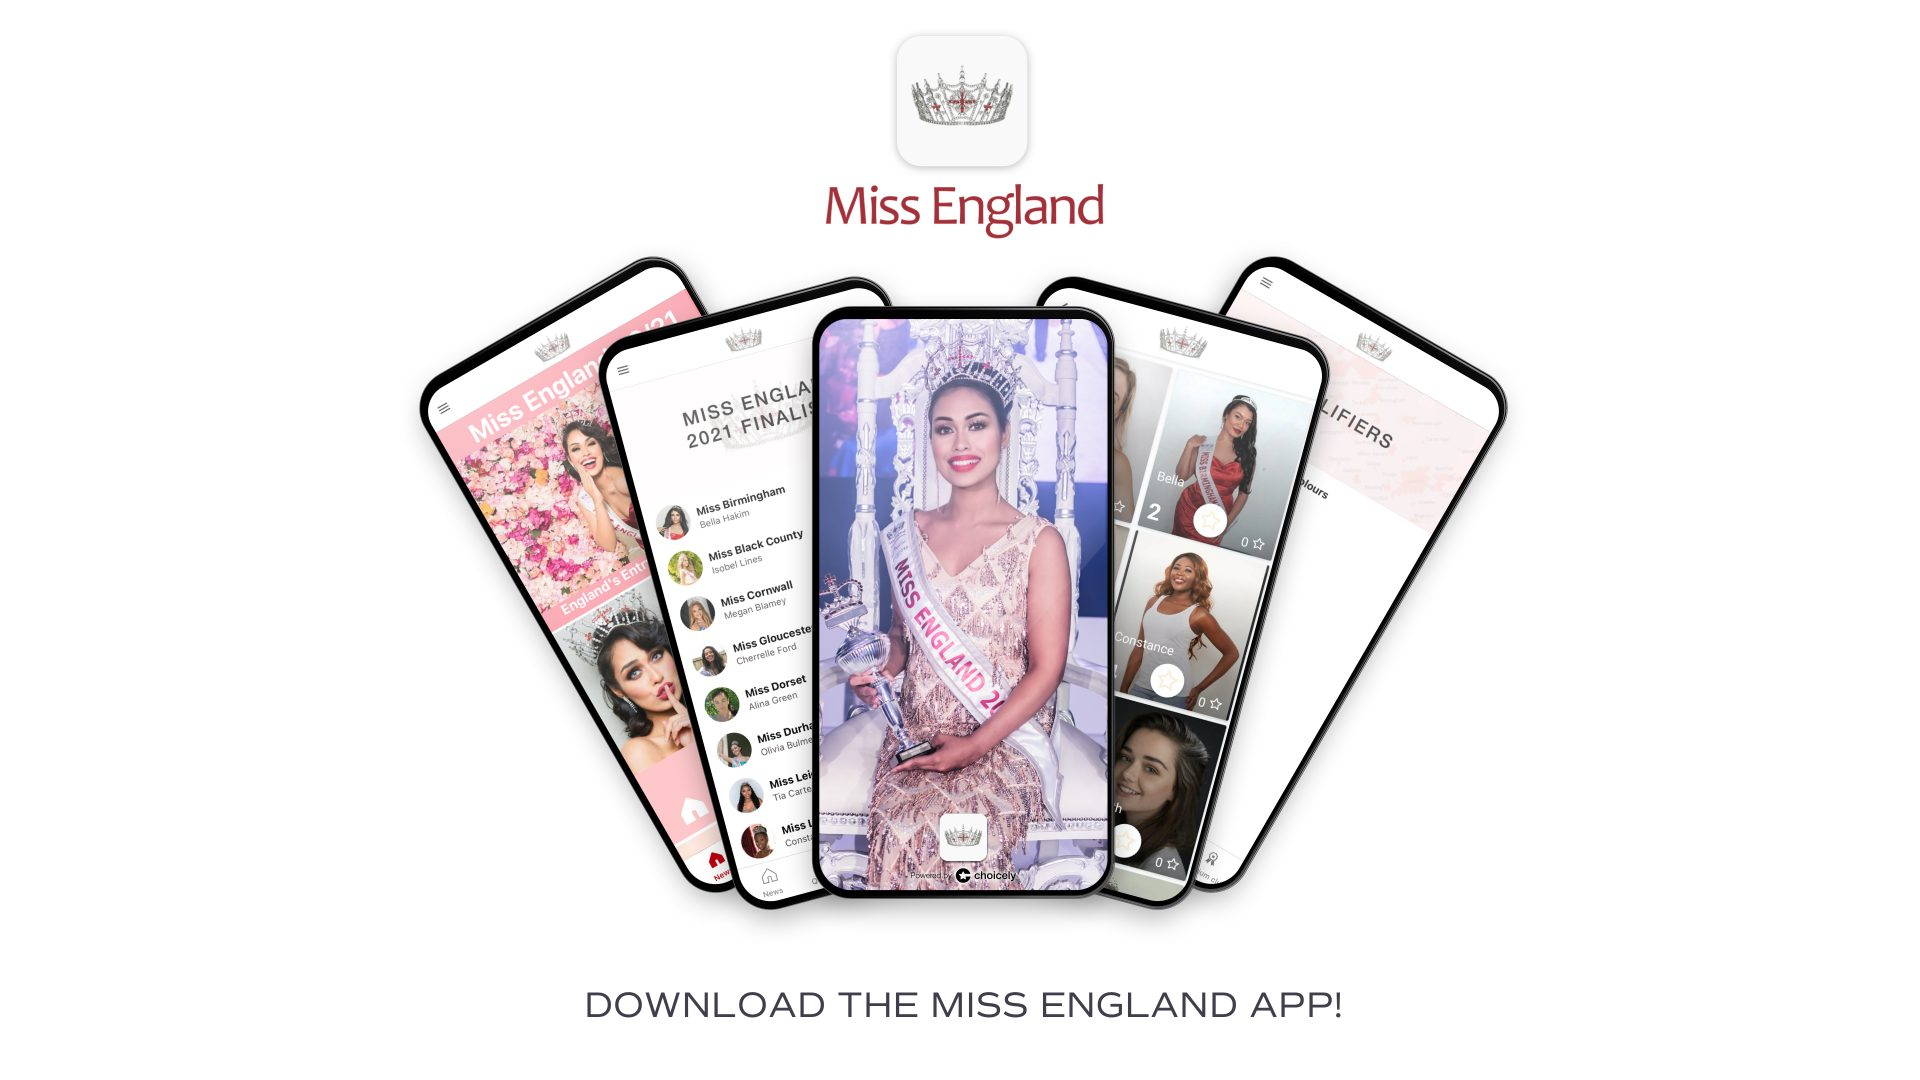 Miss England Goes Digital with its first APP